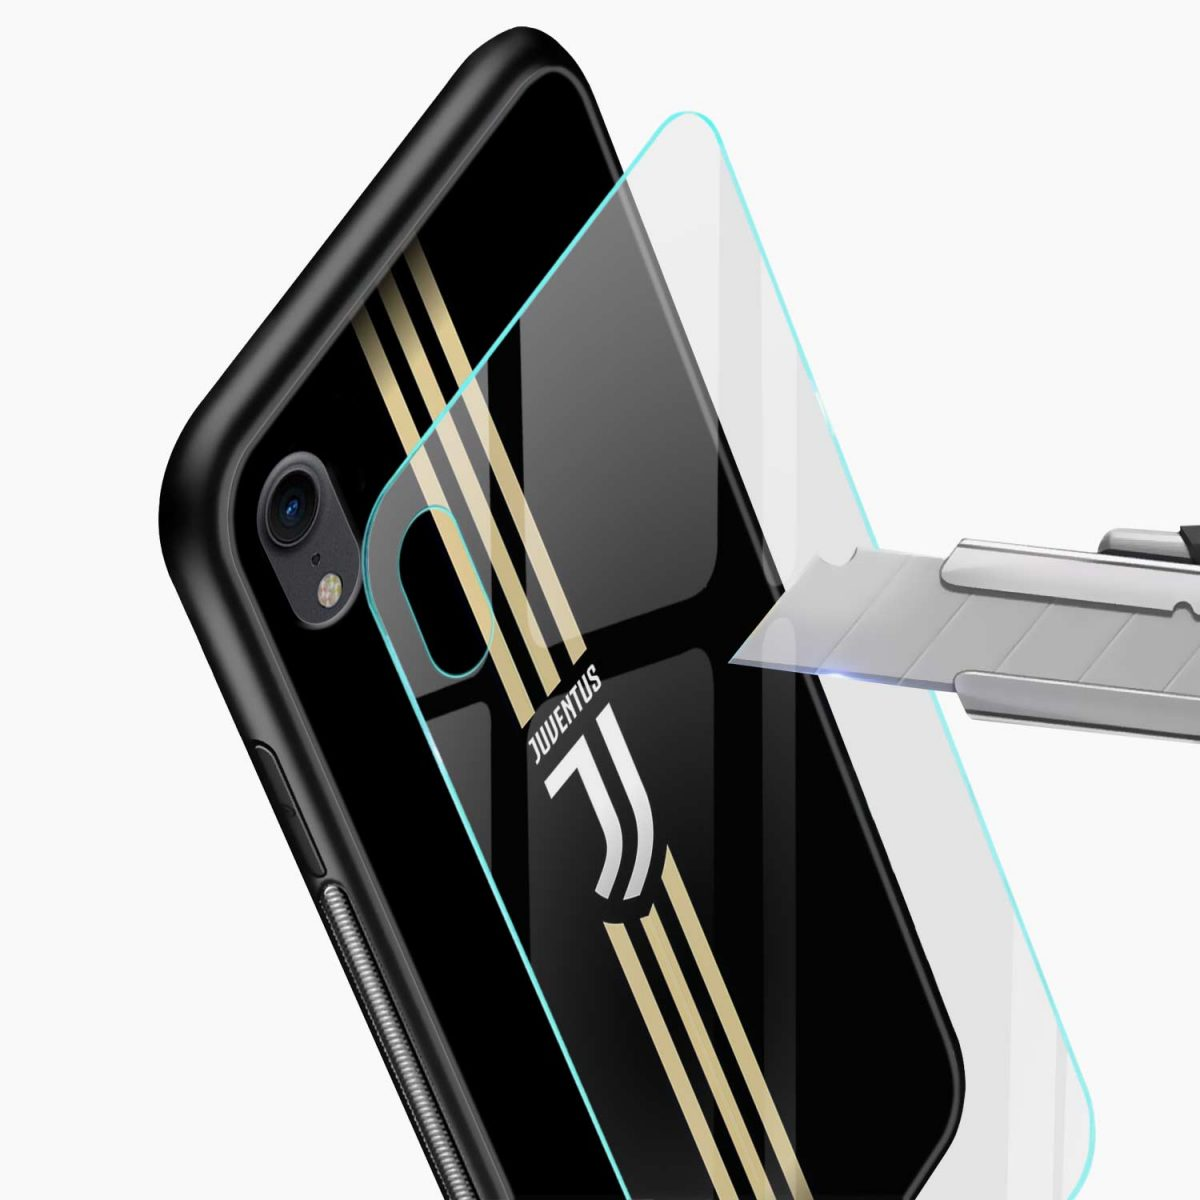 juventus golden strips apple iphone xr back cover glass view